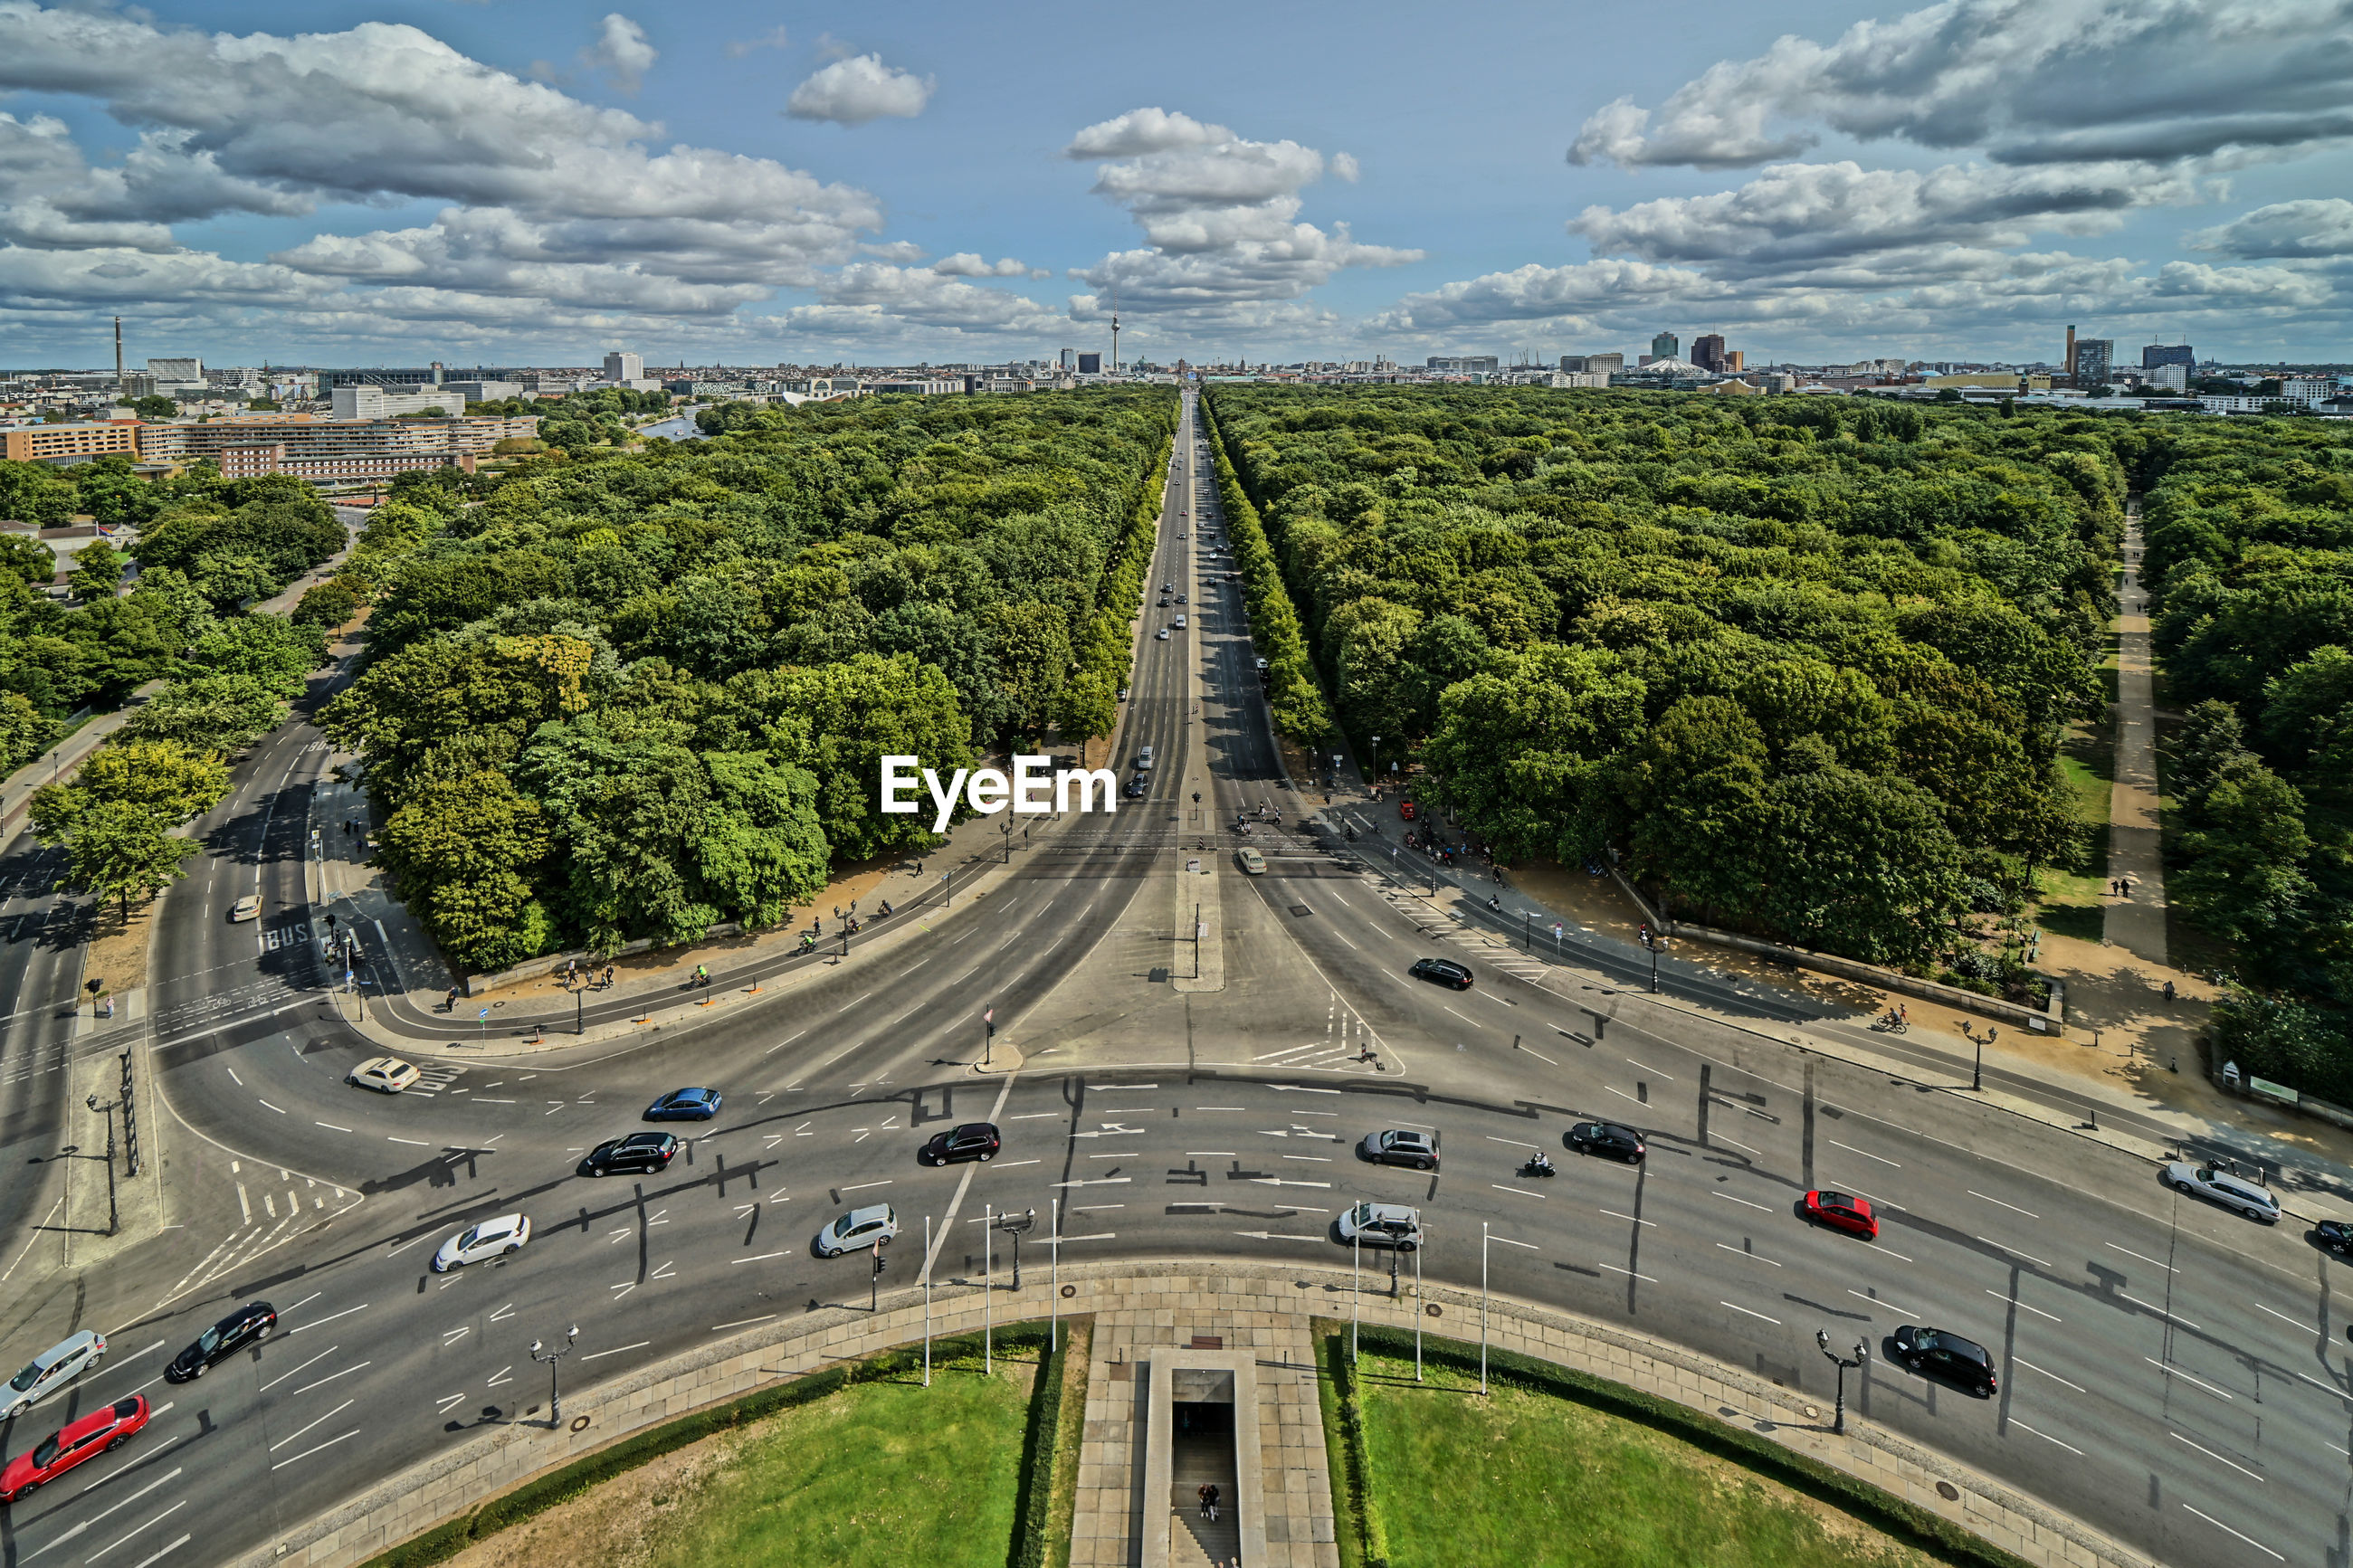 HIGH ANGLE VIEW OF ROAD AMIDST TREES AND CITY AGAINST SKY